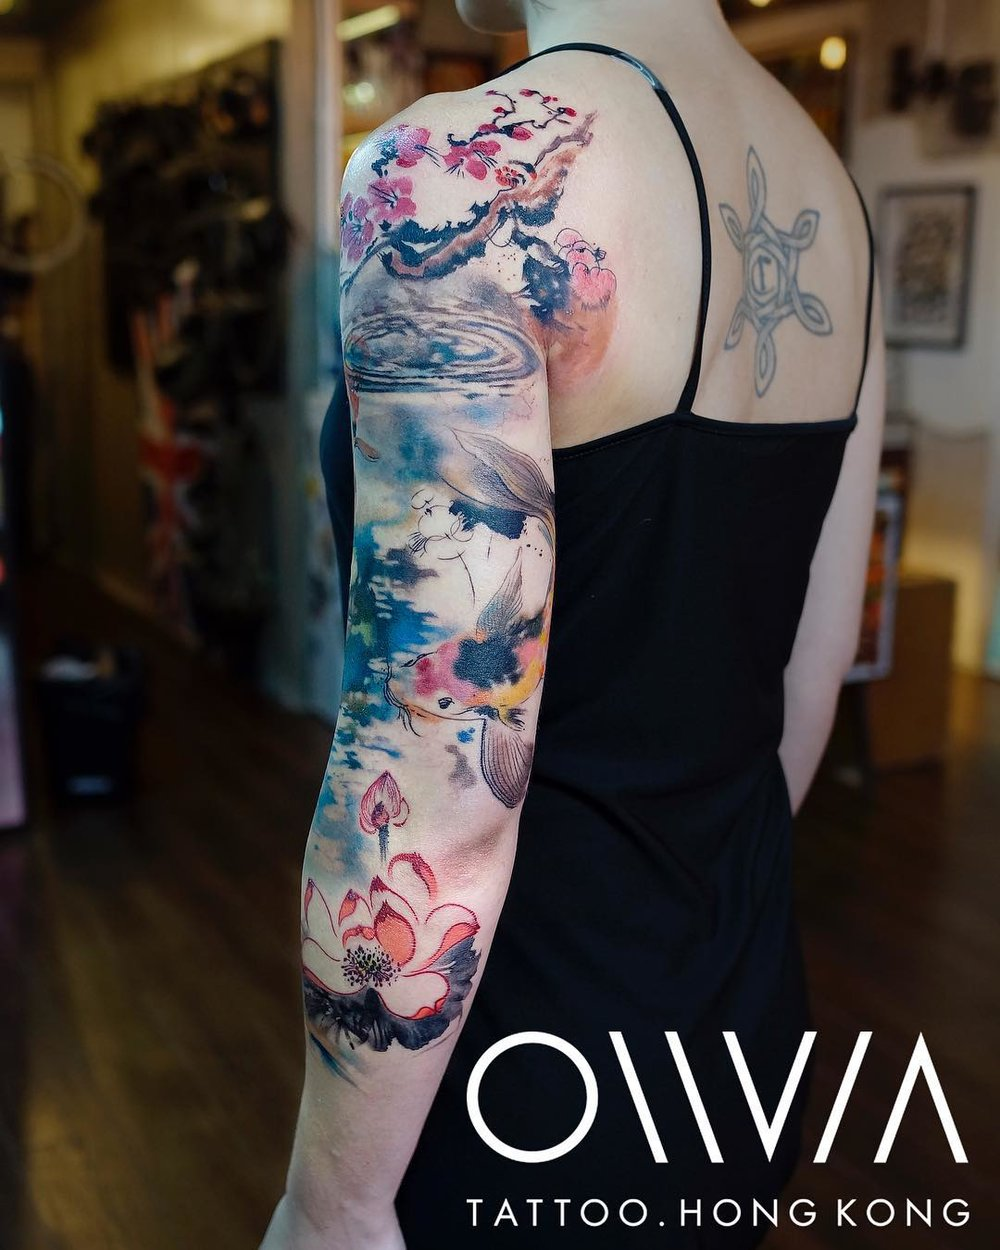 2018-fridays-tattoo-hong-kong-olivia-koi-sleeve-3.jpg